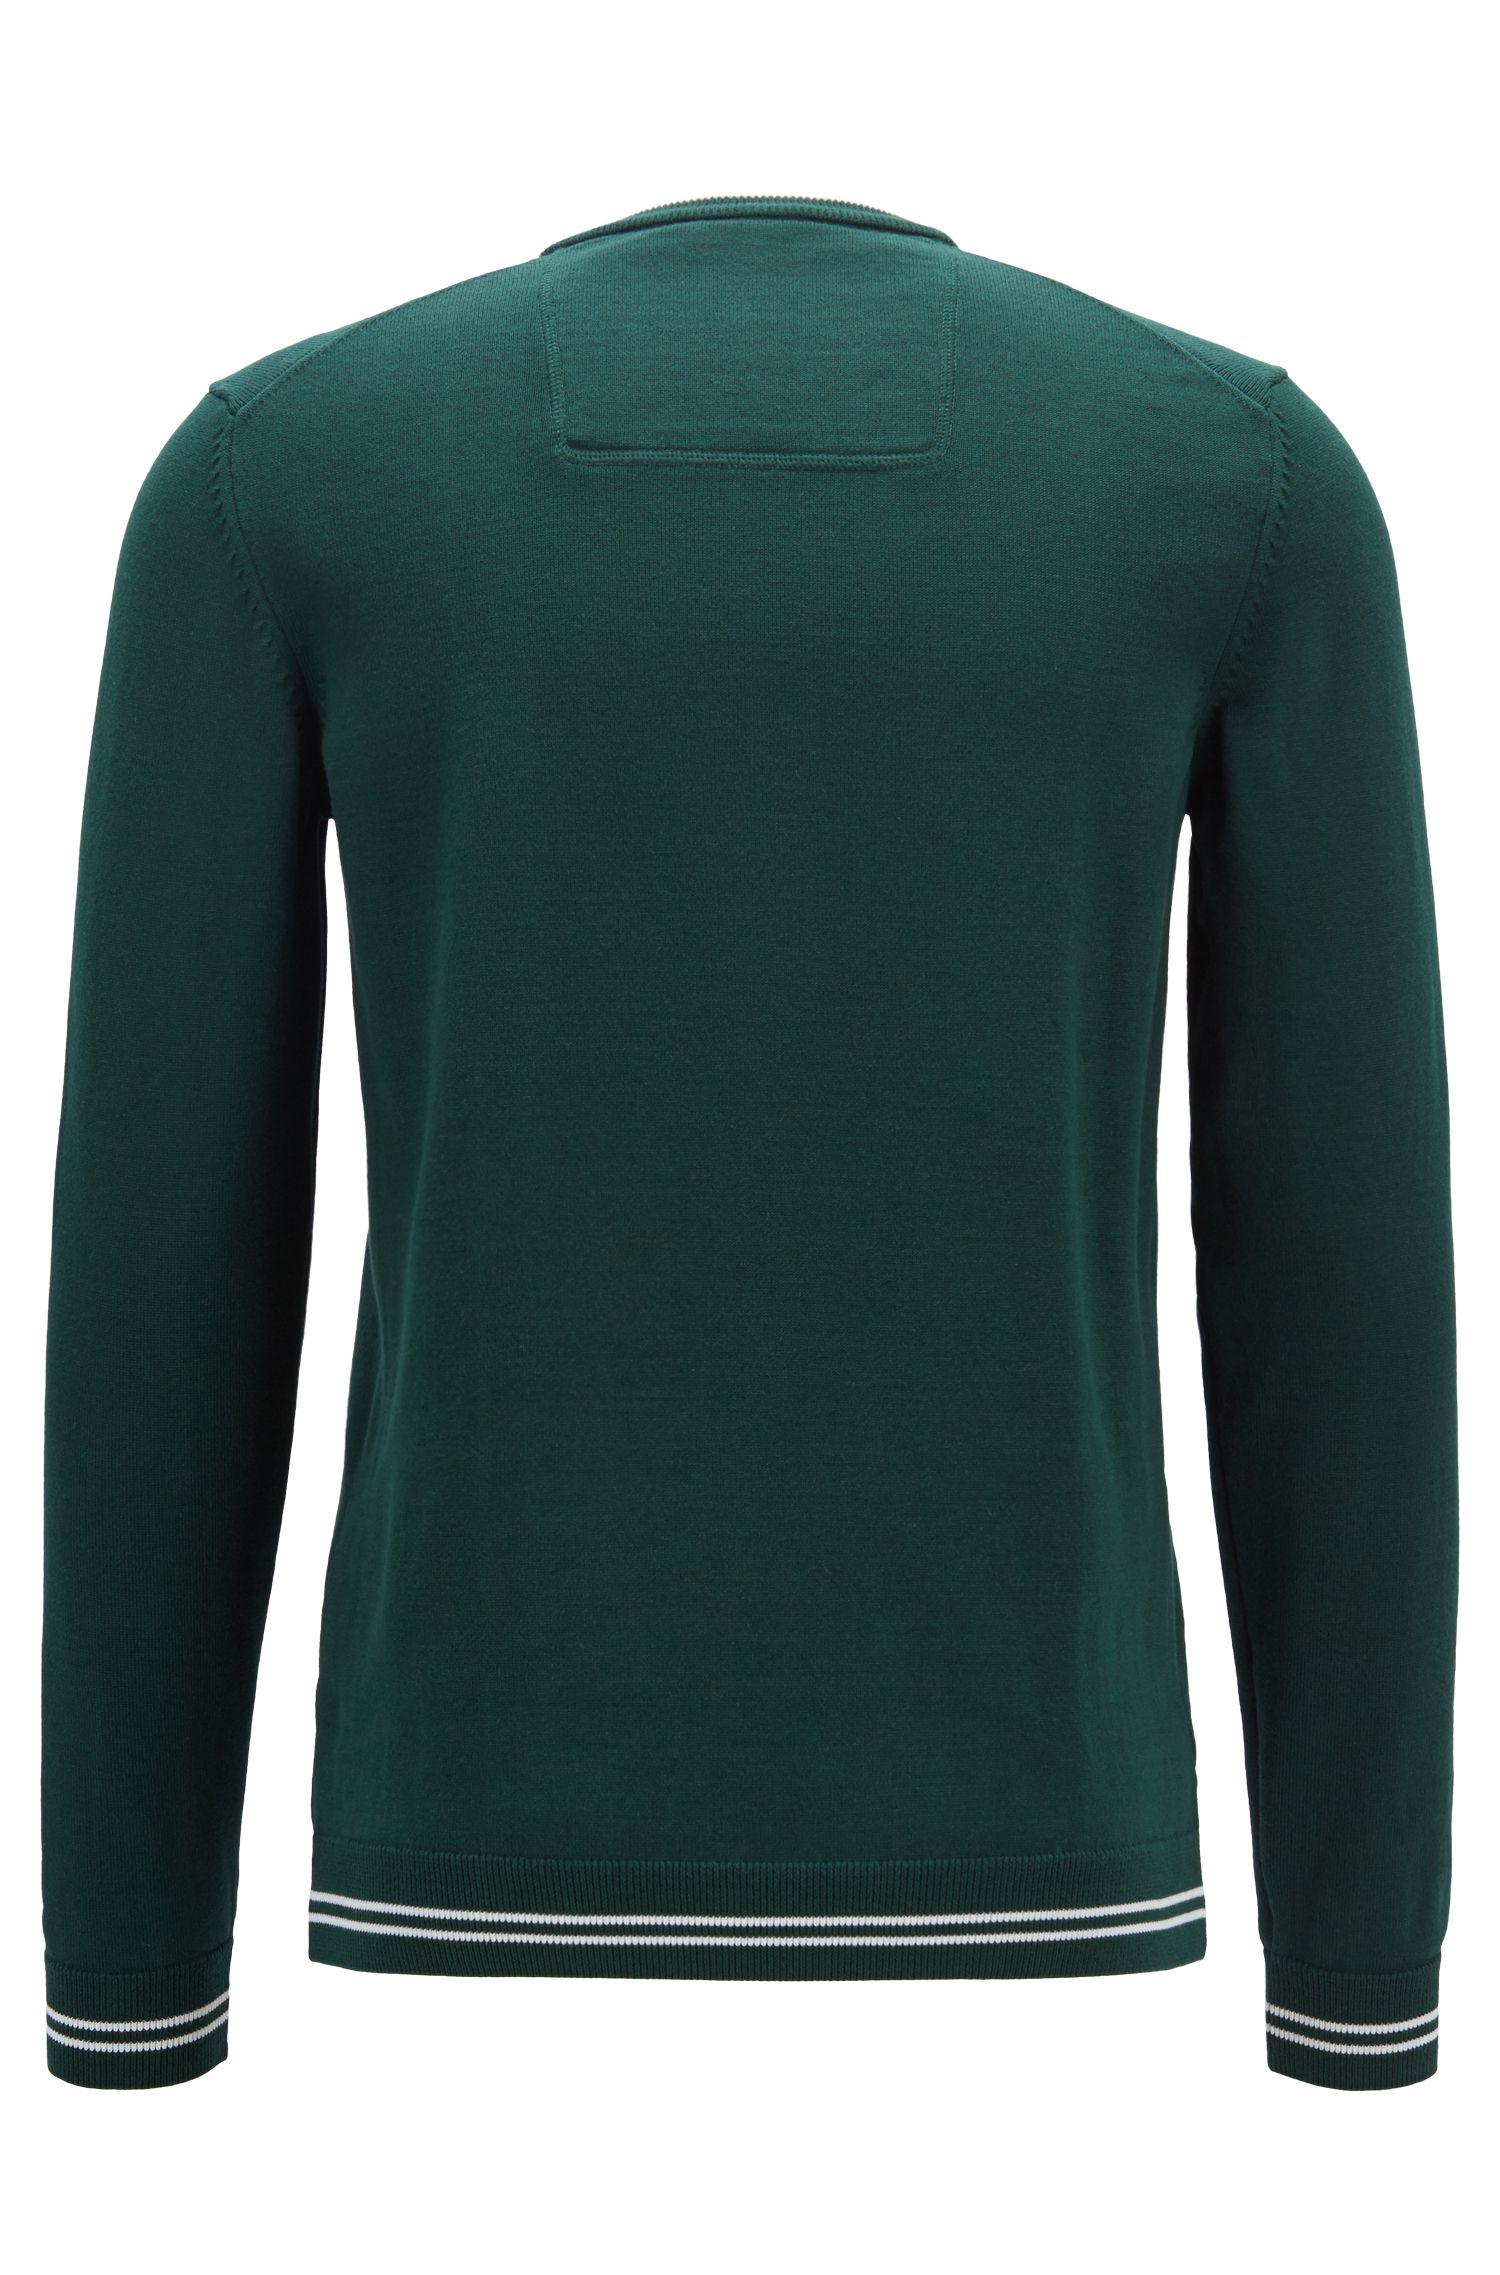 Cotton-blend knitted sweater with tipping stripes, Dark Green